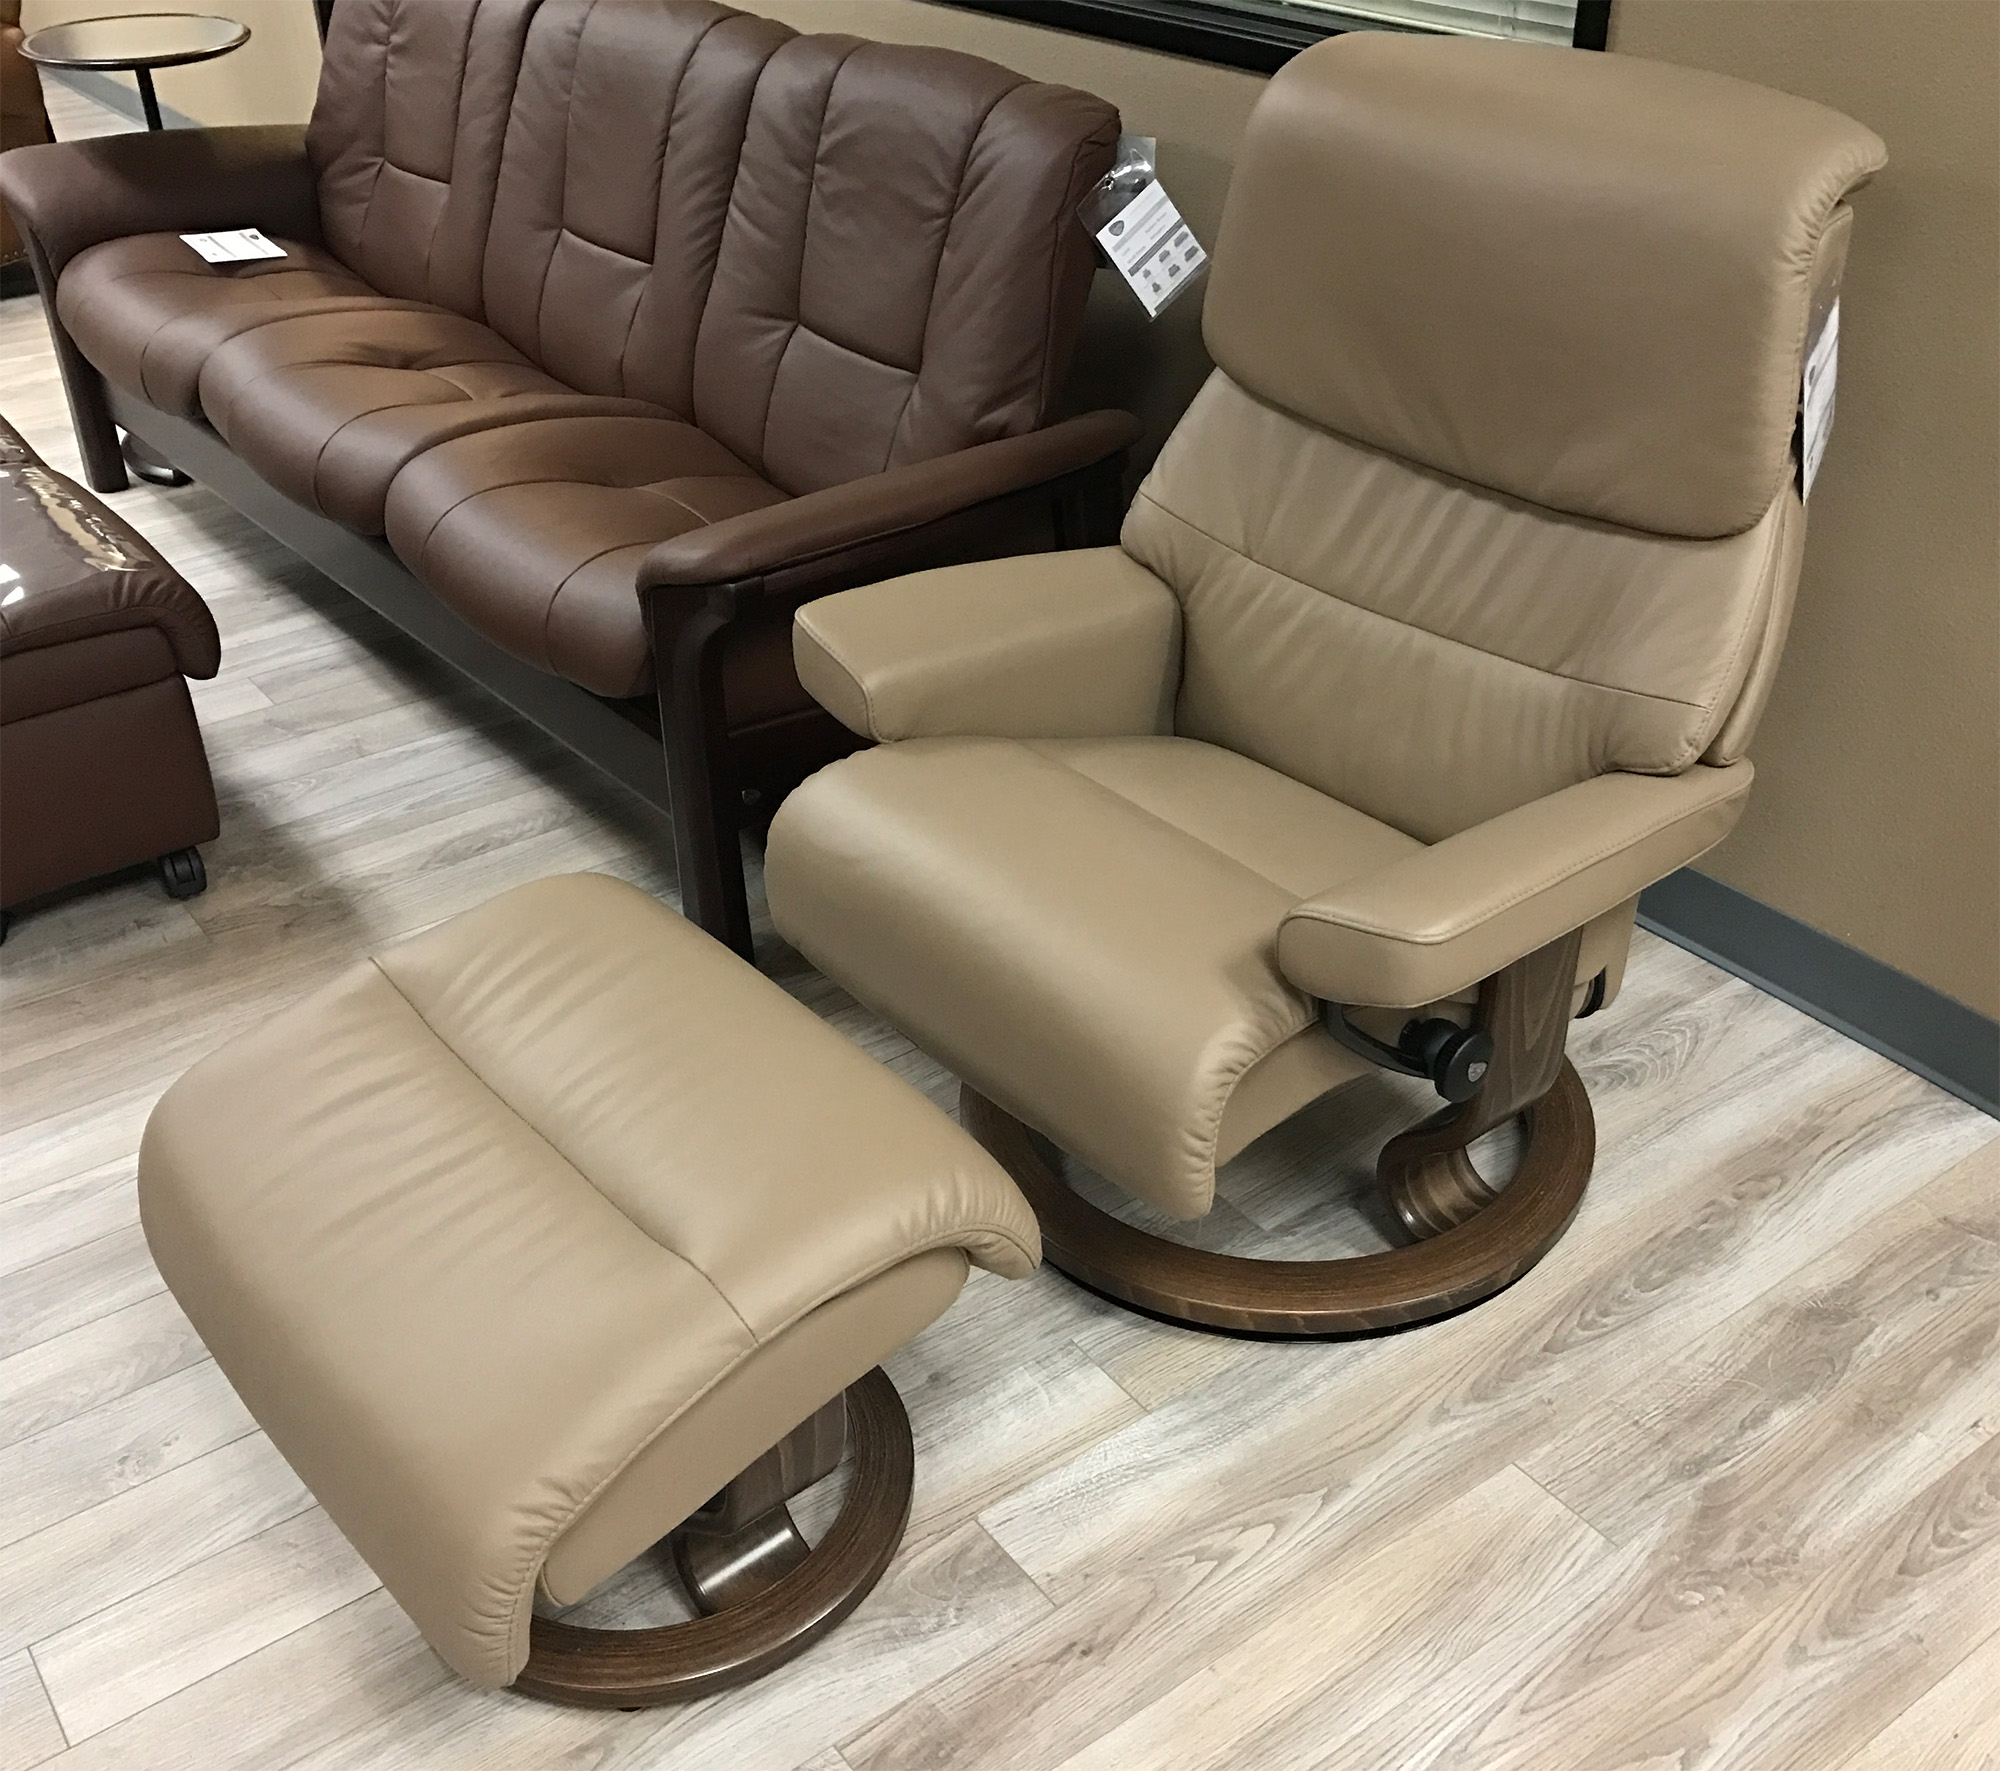 Stressless Paloma Stressless Capri Paloma Funghi Leather Recliner Chair And Ottoman By Ekornes